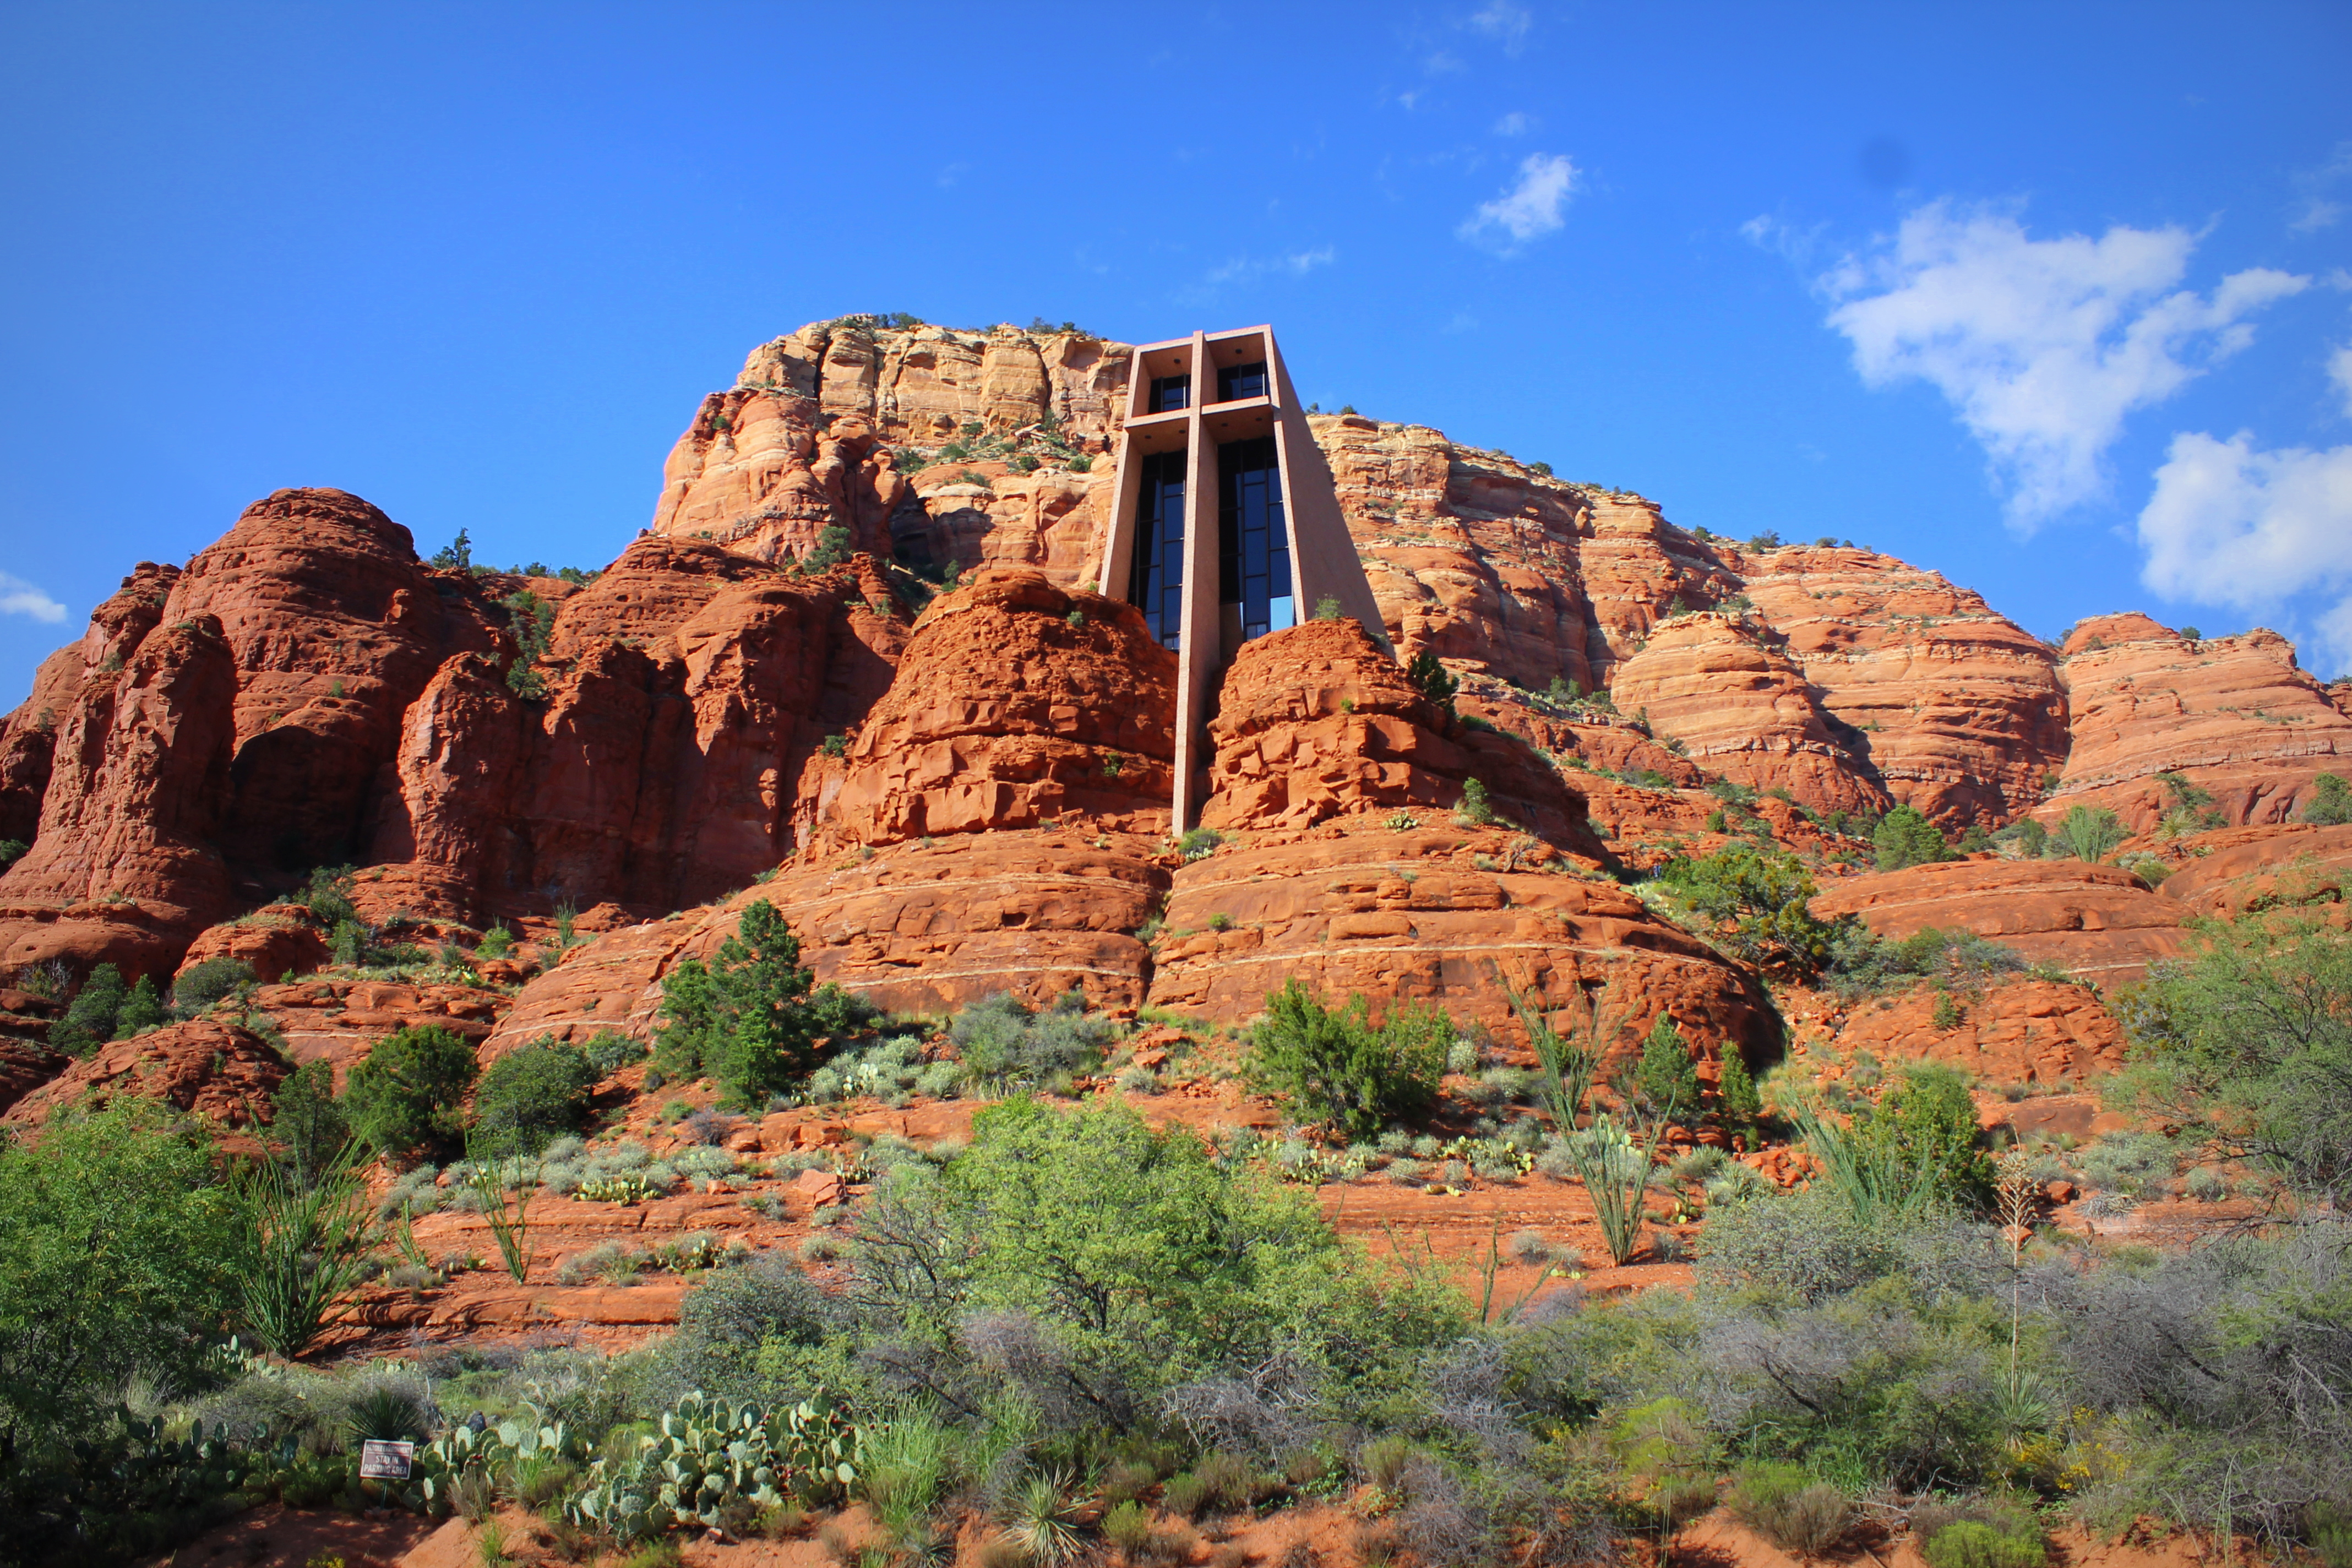 Beautyful Places Destination: Sedona: One Of The Most Beautiful Places On Earth